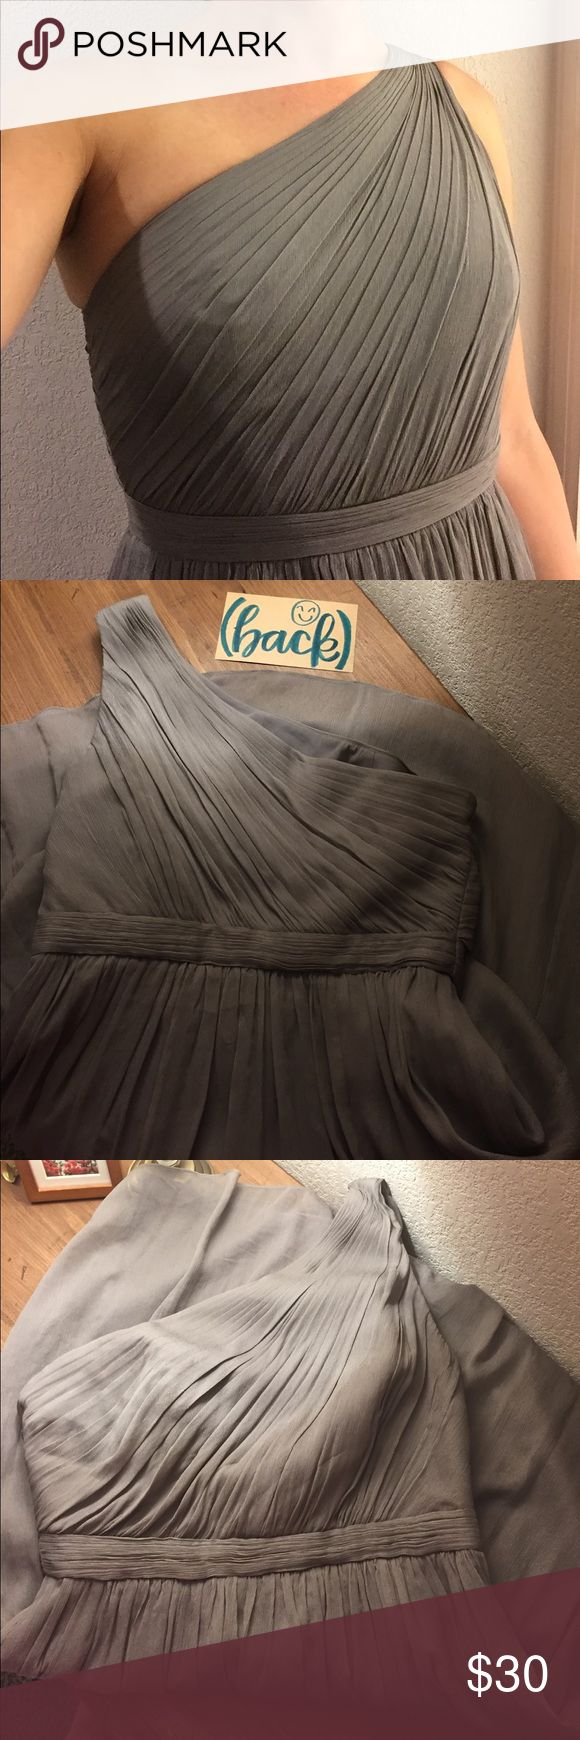 J Crew Bridesmaid Dress Kylie Graphite Kylie Dress in Silk Chiffon side zip. Size 4. Fits comfortably size 4 but I am currently a size 6 in the photos. Only wore this once for the wedding so I hope someone in need of a one shoulder J Crew Silk Chiffon Graphite colored dress is about to find this deal!!! J. Crew Dresses Wedding